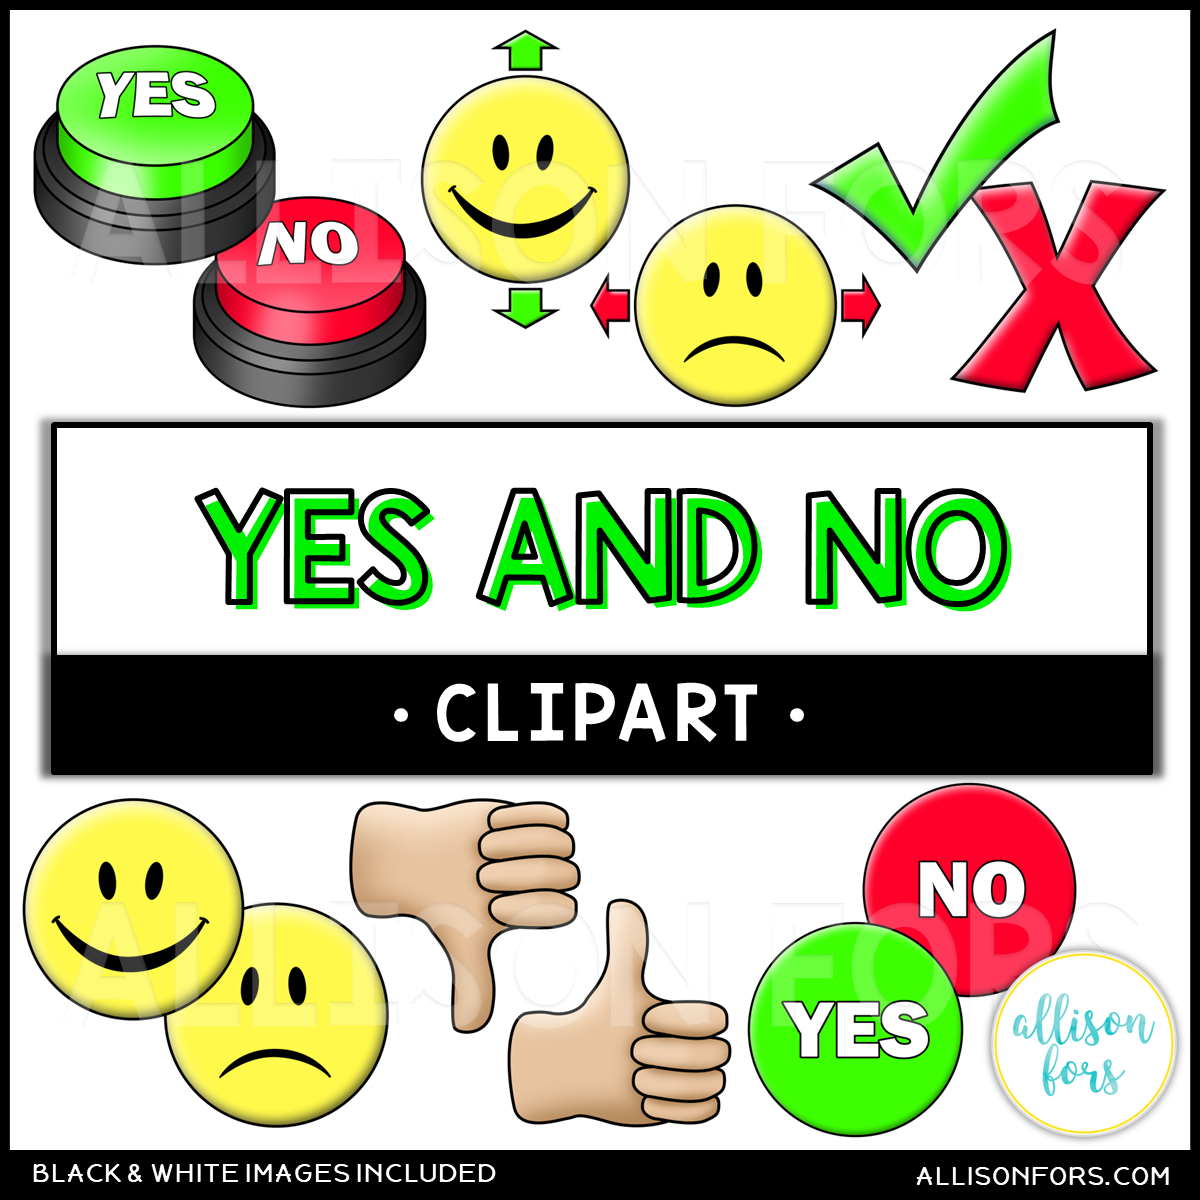 medium resolution of yes and no clipart for educational resources use as visuals in speech therapy or special education classrooms includes head nod and shake thumbs up and